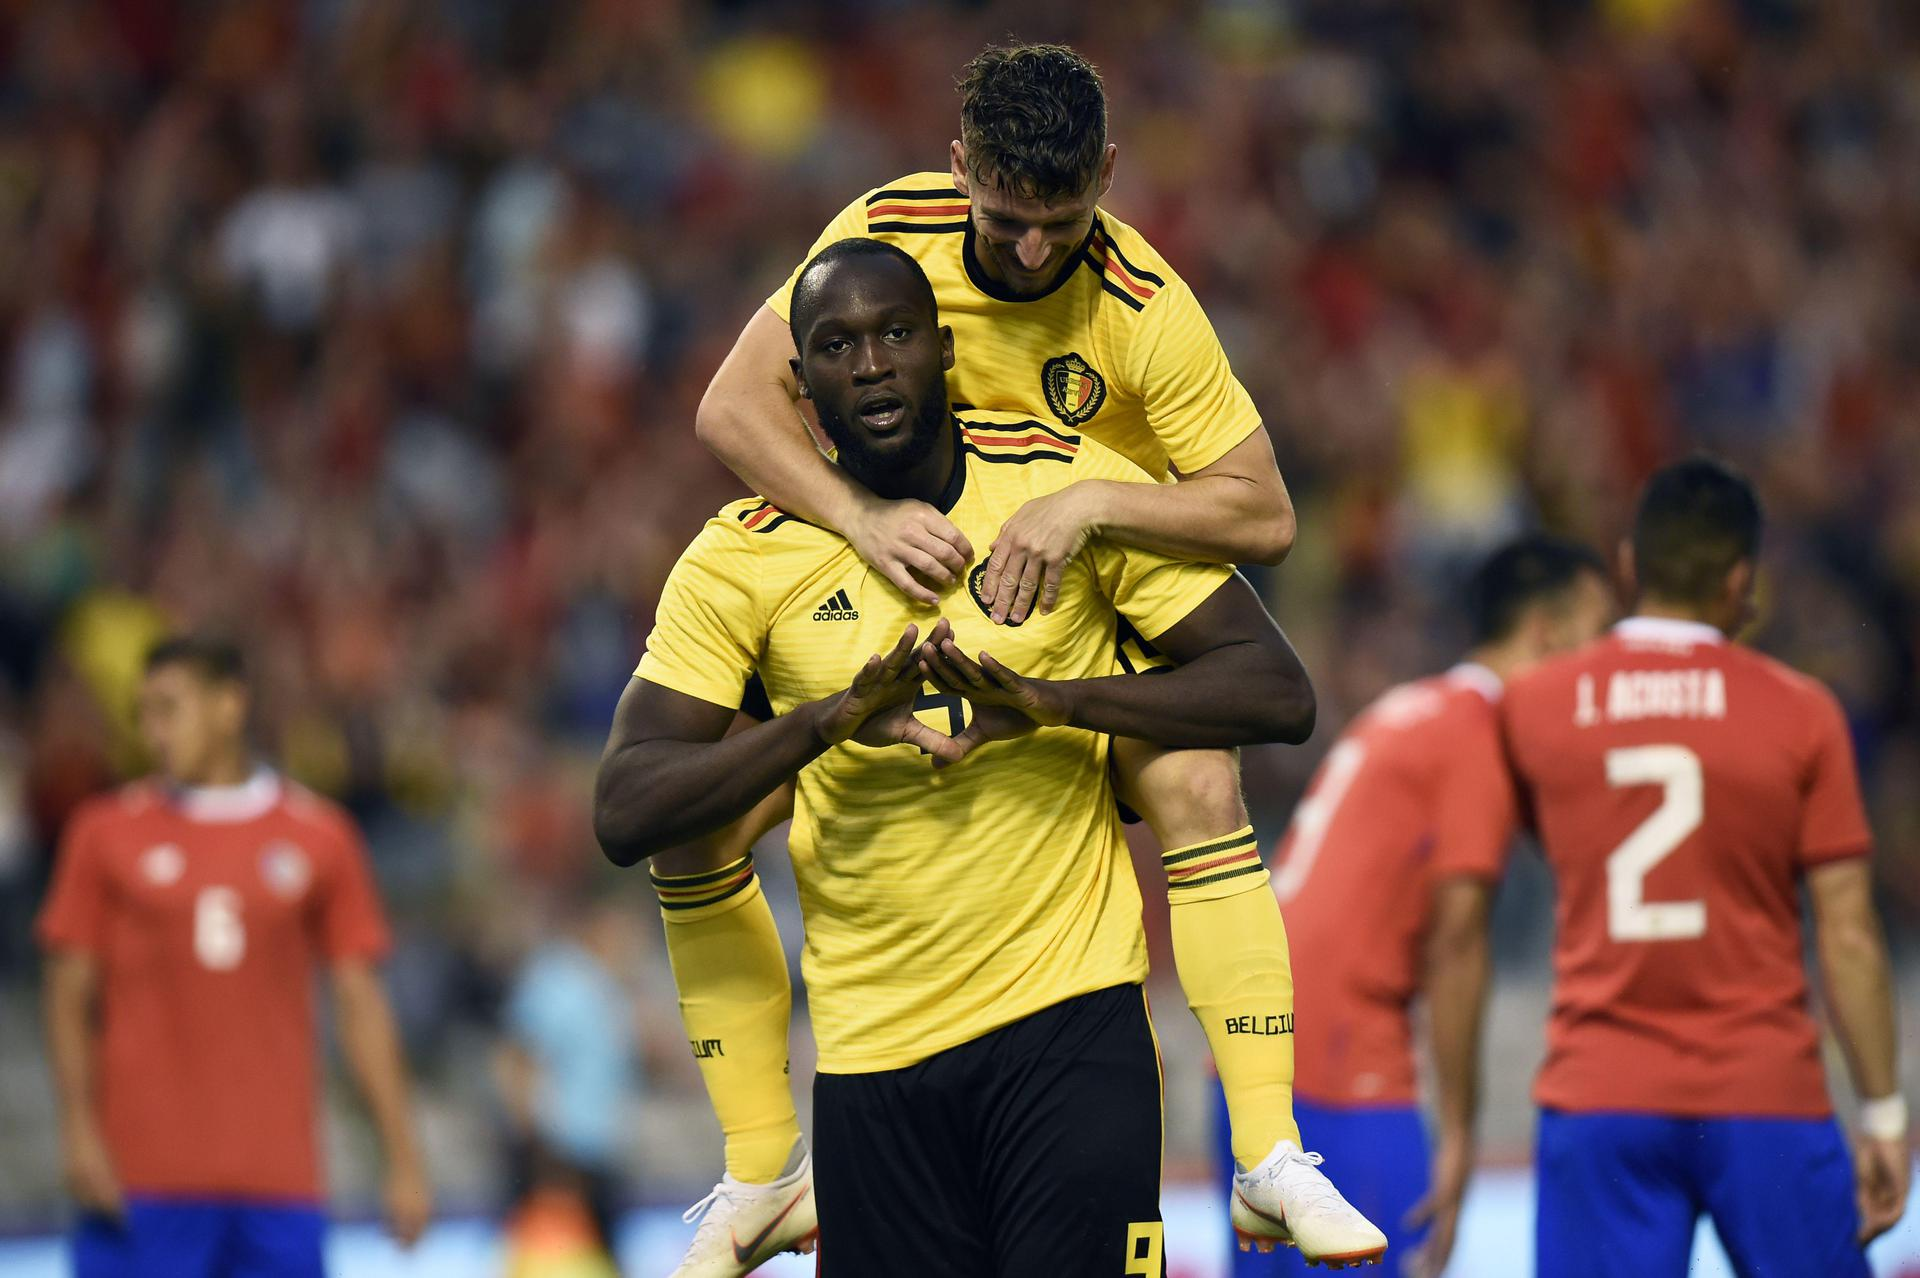 Romelu Lukaku celebrates scoring for Belgium.